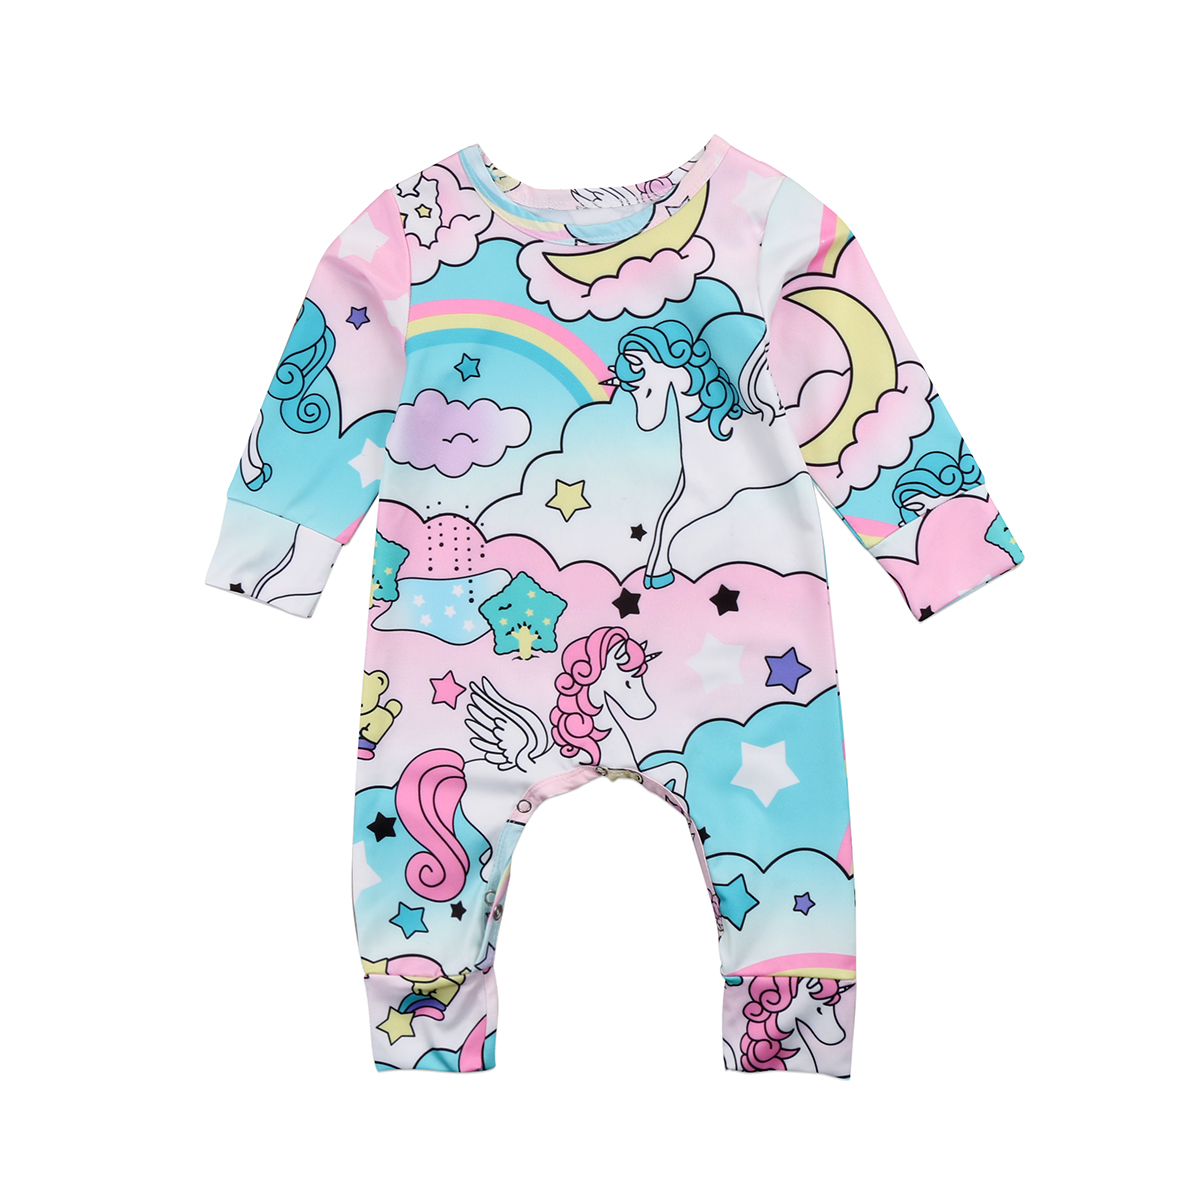 Pudcoco Newborn Kids Baby Unicorn Girls Infant Romper Jumpsuit Long Sleeve Romper Clothes Outfits pudcoco newborn infant baby girls clothes short sleeve floral romper headband summer cute cotton one piece clothes